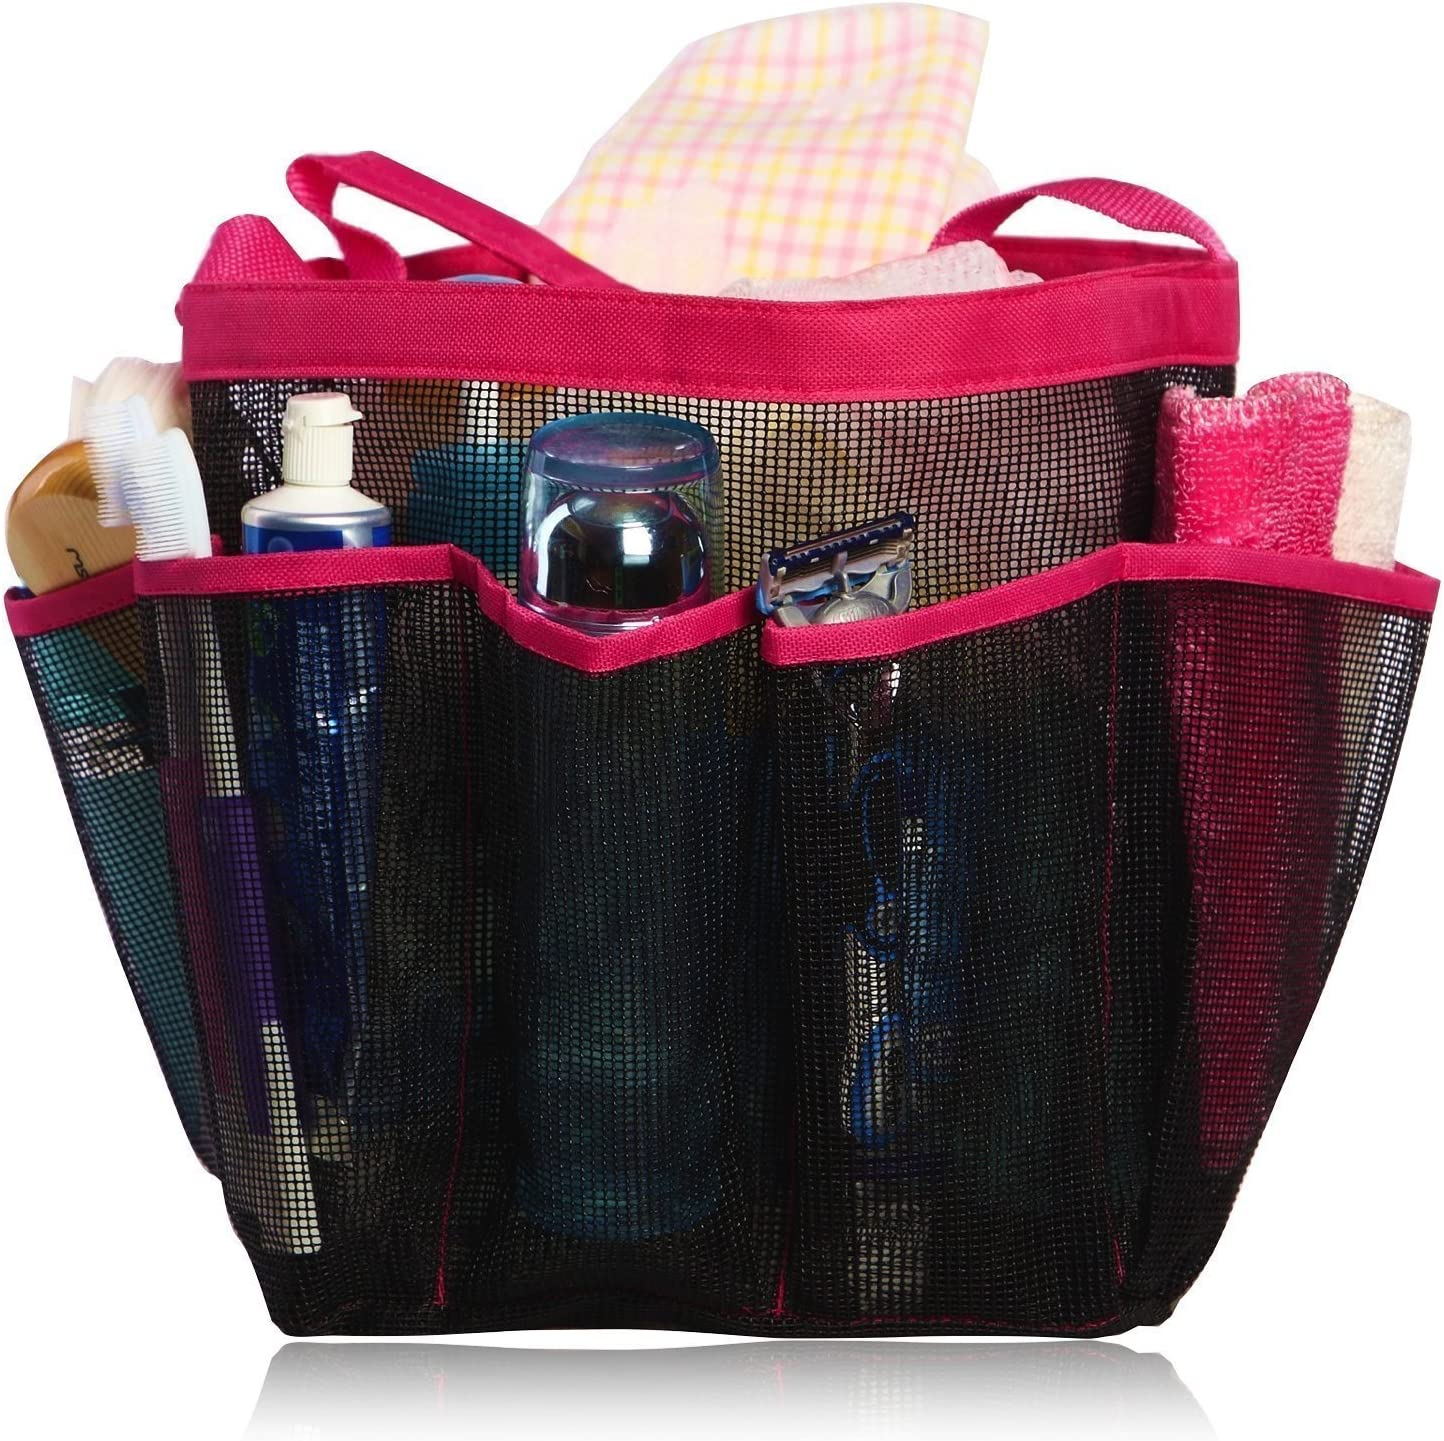 eoocvt Mesh Shower Caddy 8 Pockets Dry T San Jose Mall Quick Toiletry Hanging safety